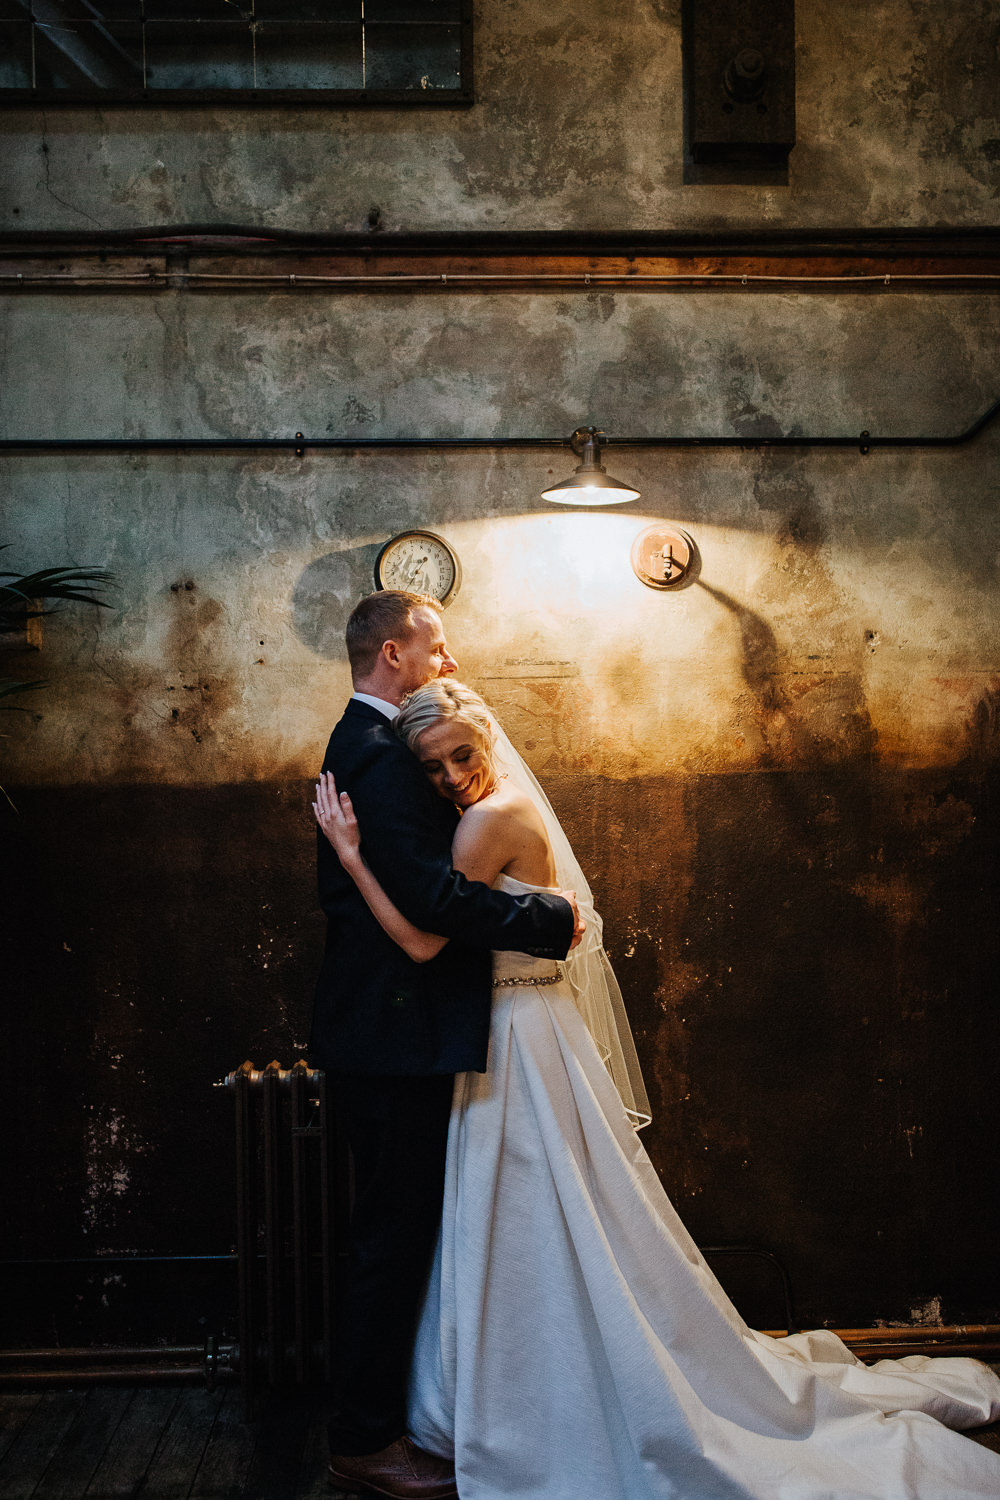 Bride Bridal Dress Gown Strapless Veil Jesus Peiro Train Belt Holmes Mill Wedding Emilie May Photography